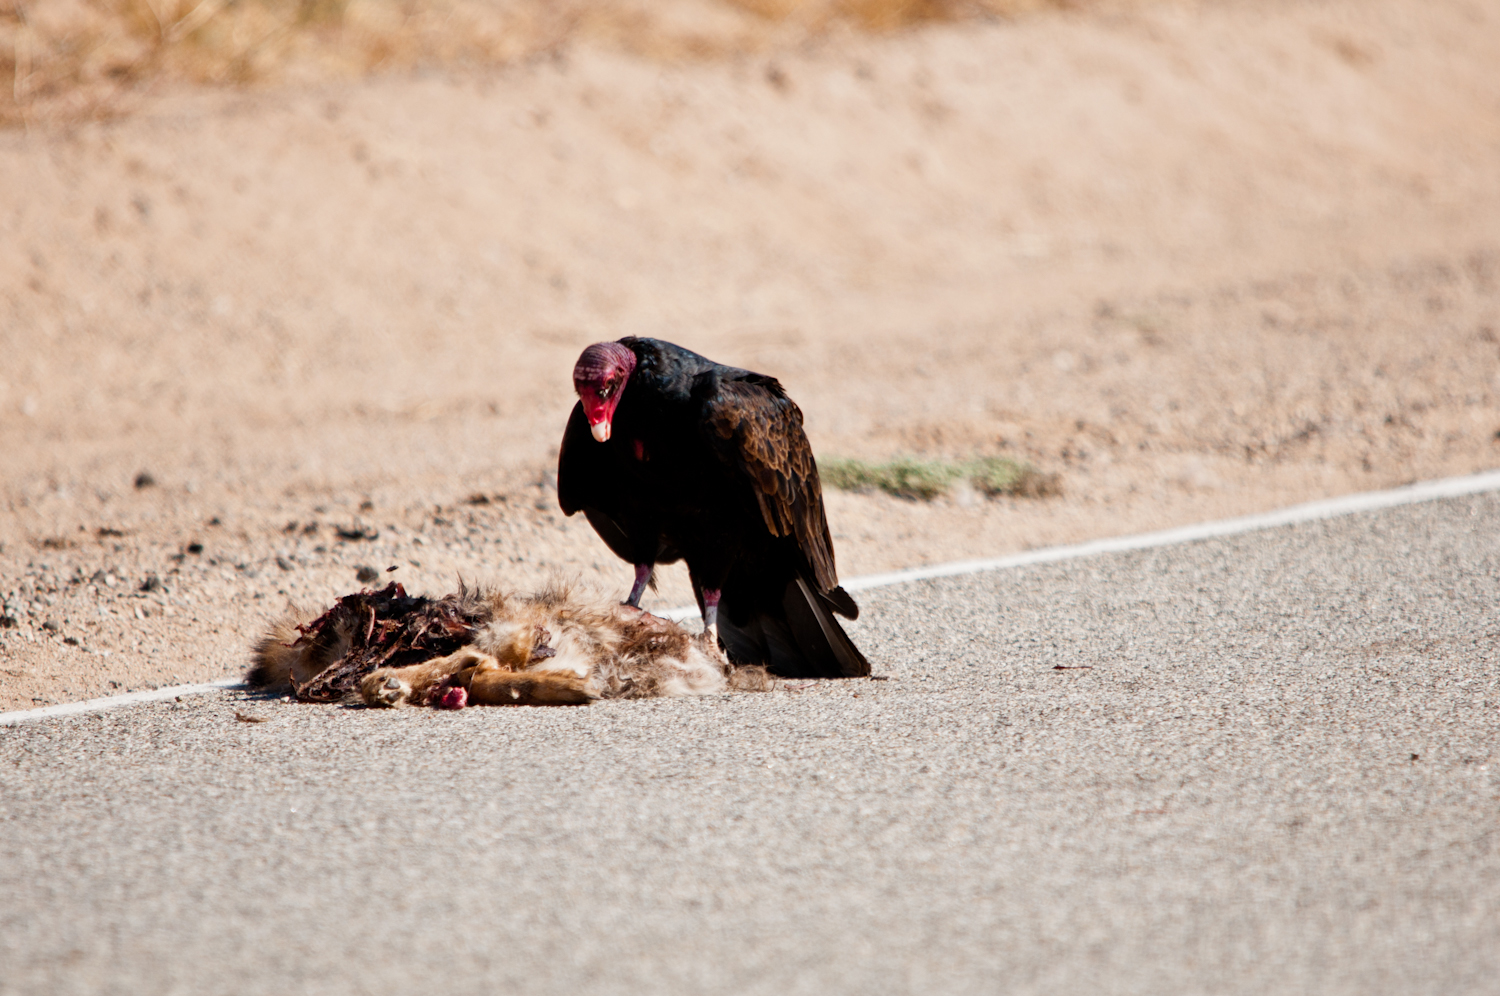 Vulture Eating Human